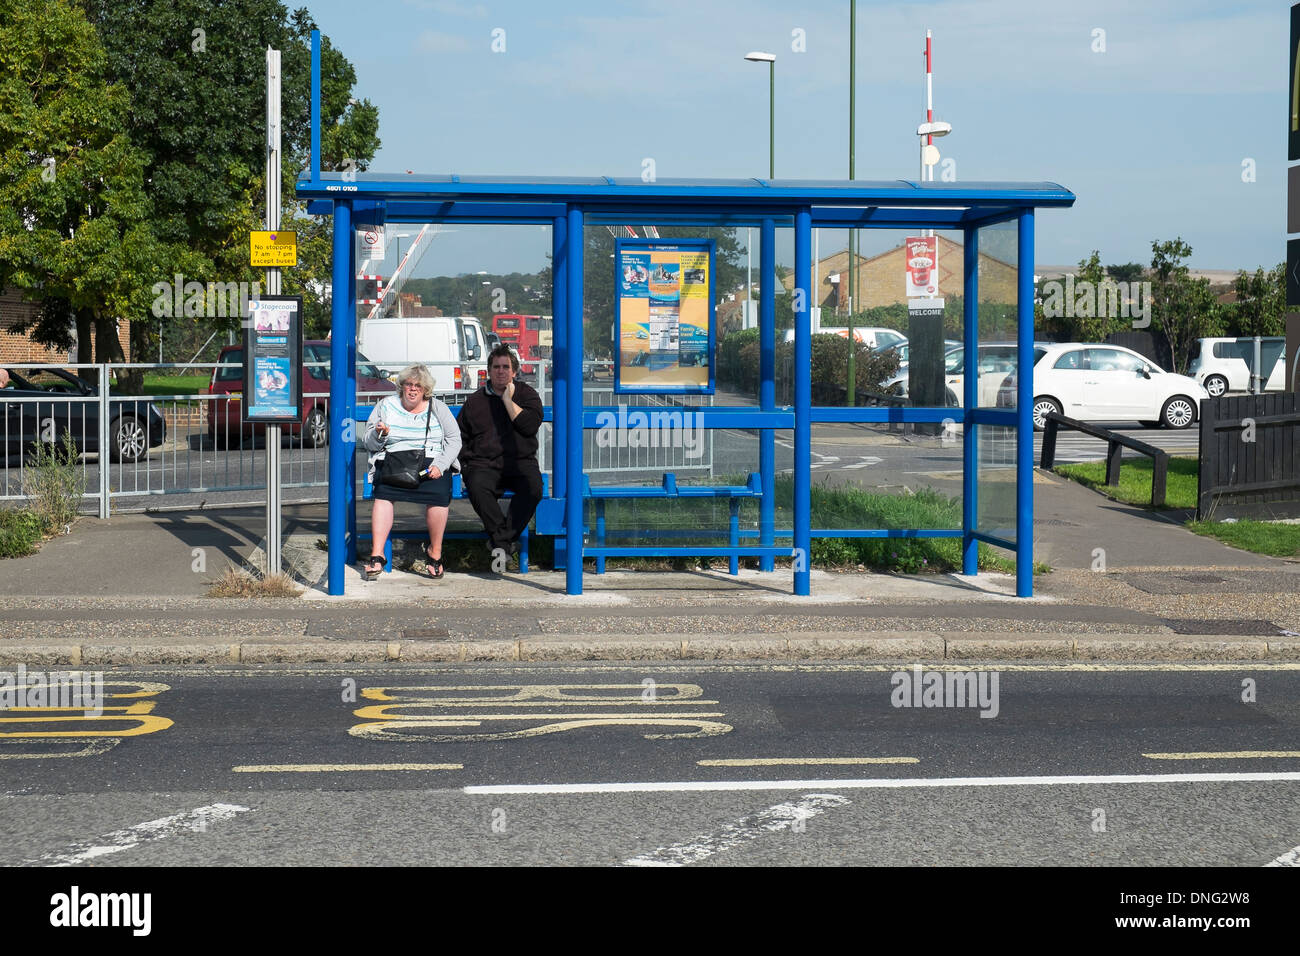 2 persons waiting in a bus stop - Stock Image